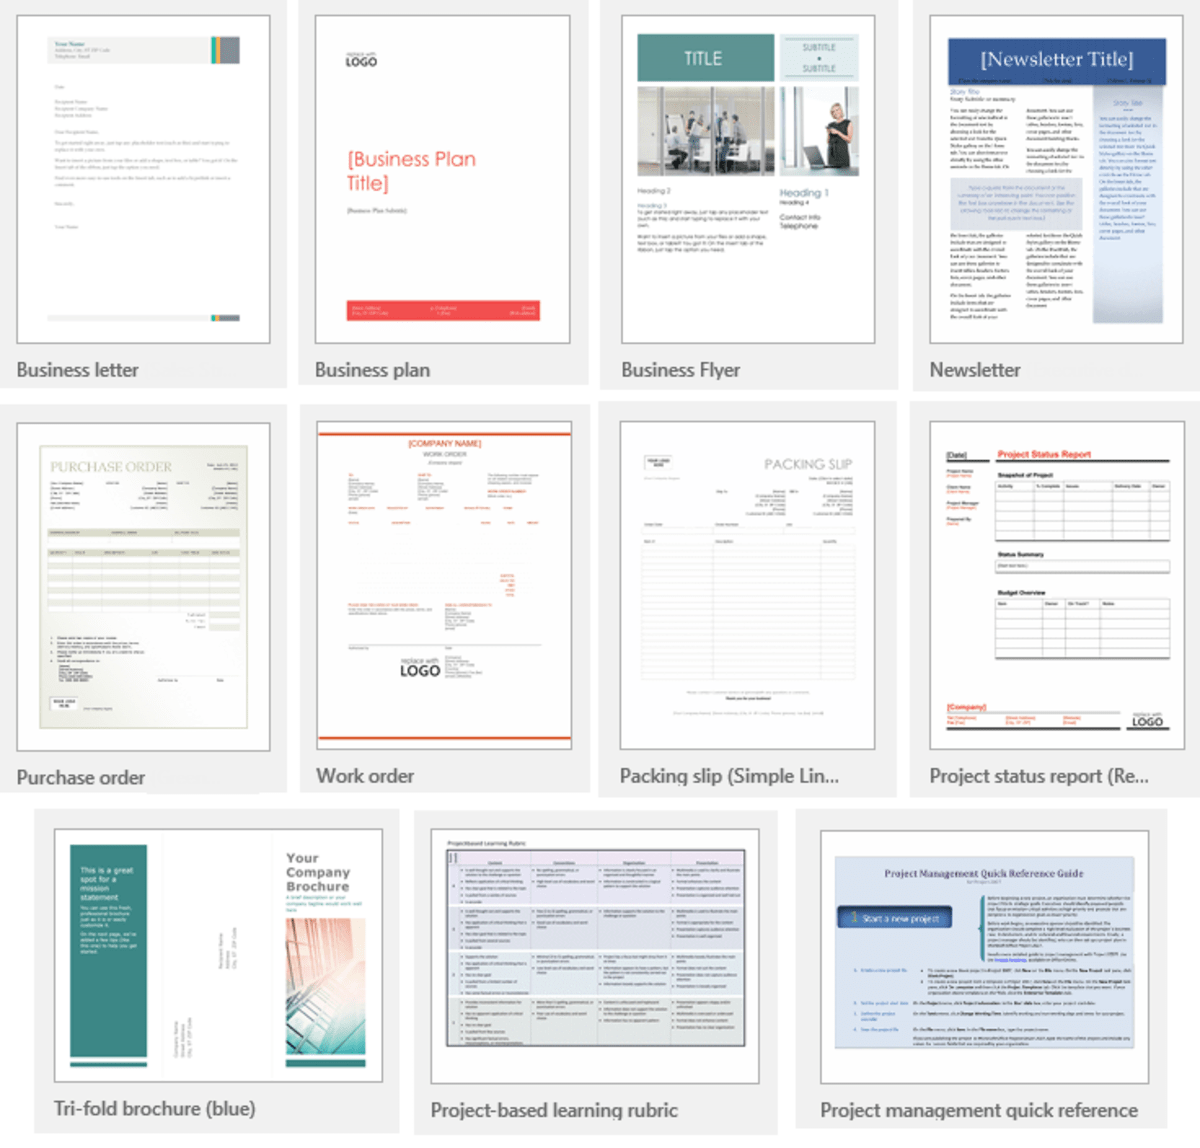 Microsoft Word 2016 Templates Showcase TurboFuture